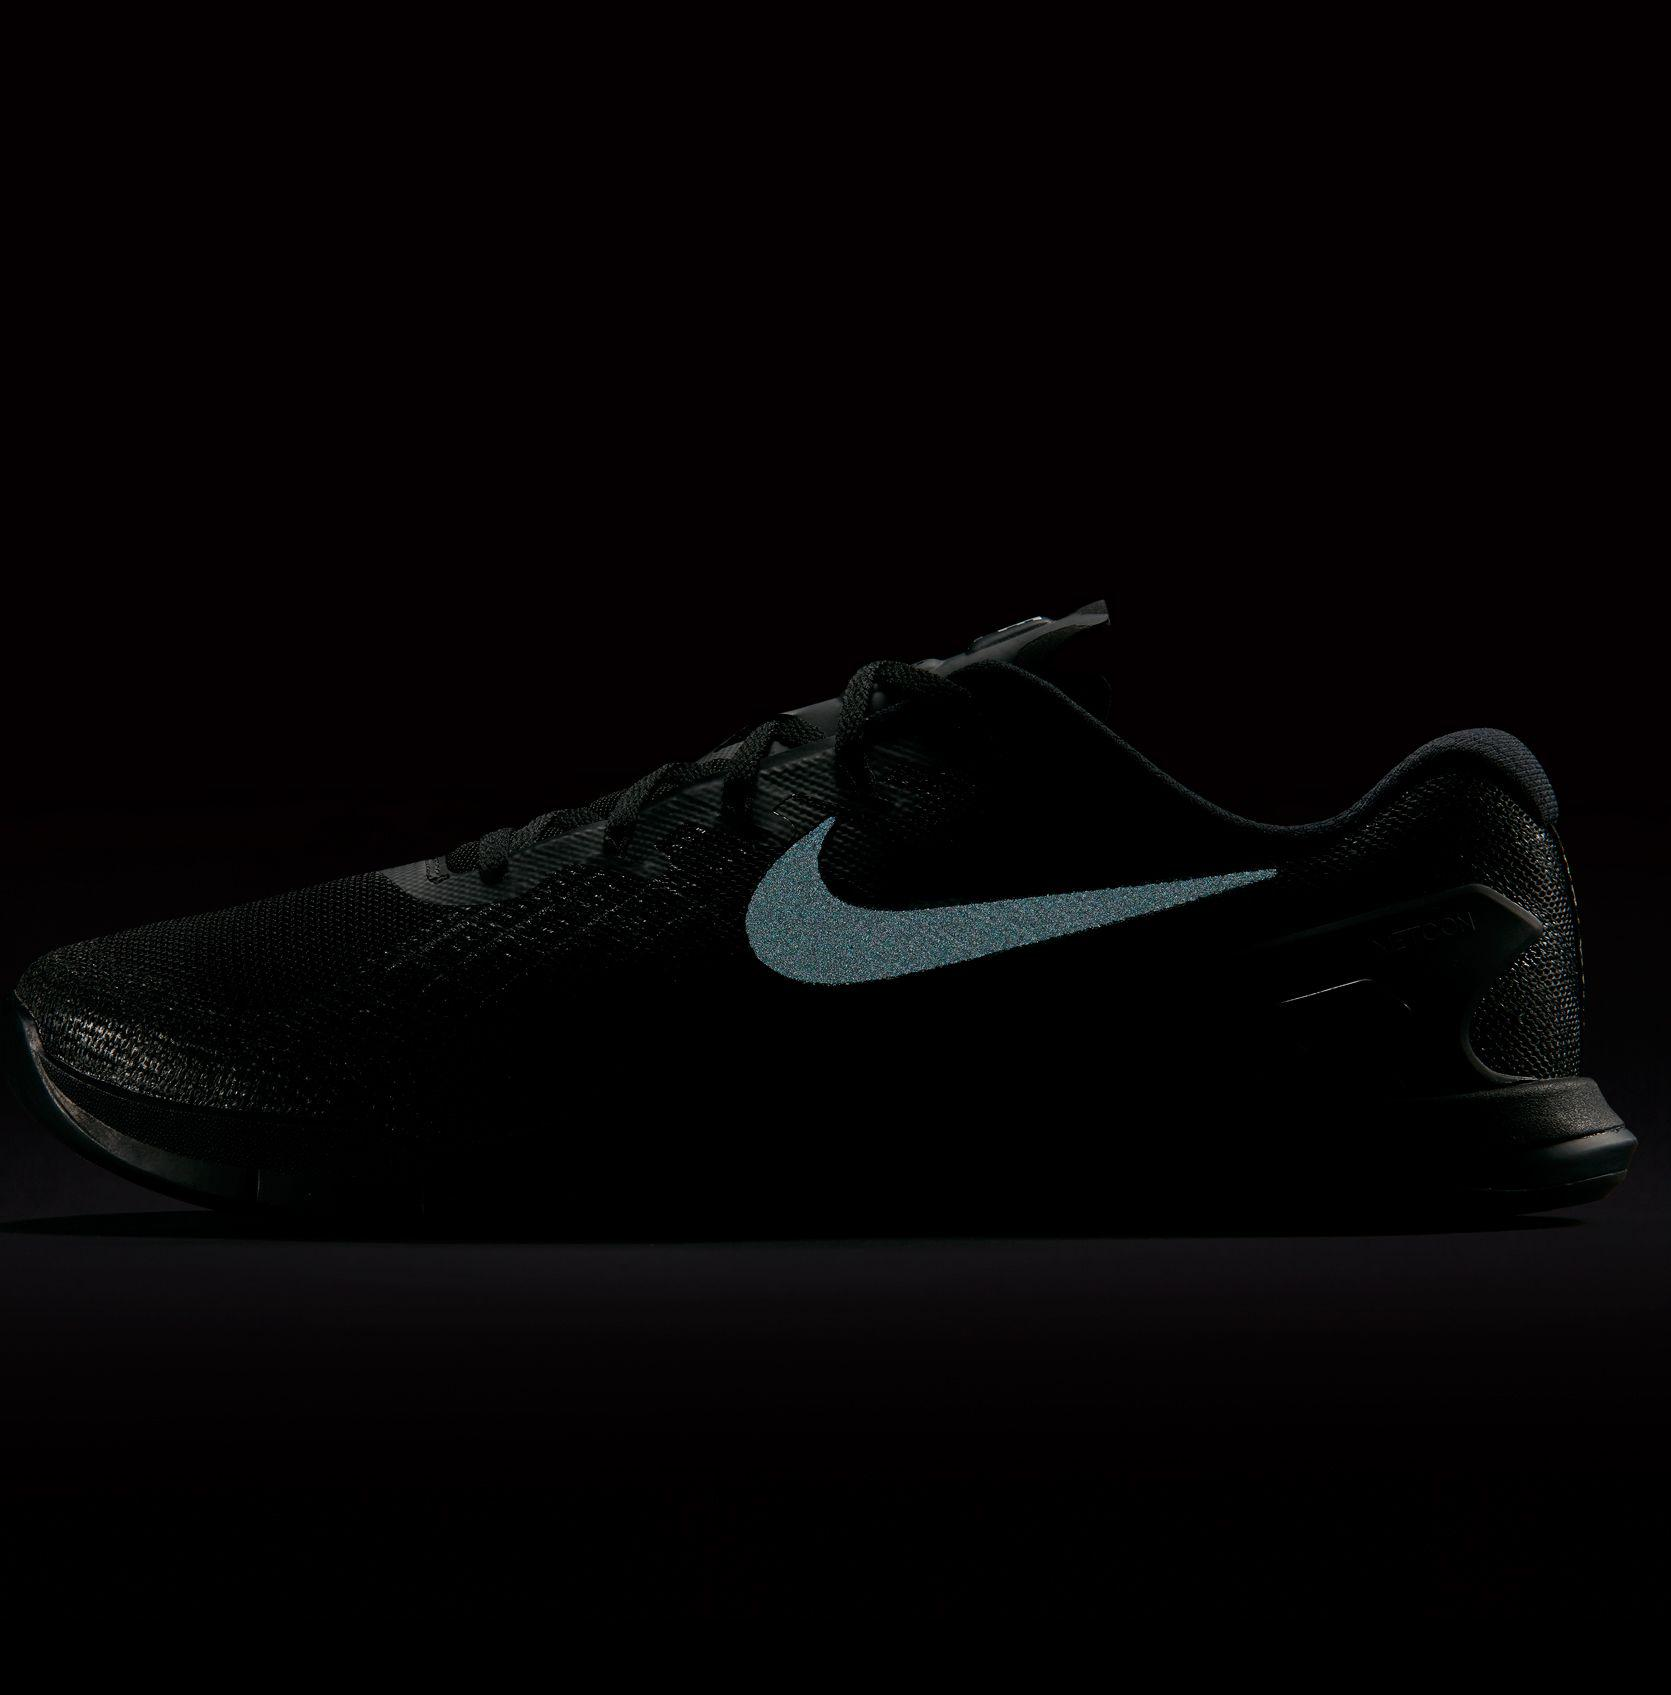 85b96d385be Lyst - Nike Metcon 3 Training Shoes in Black for Men